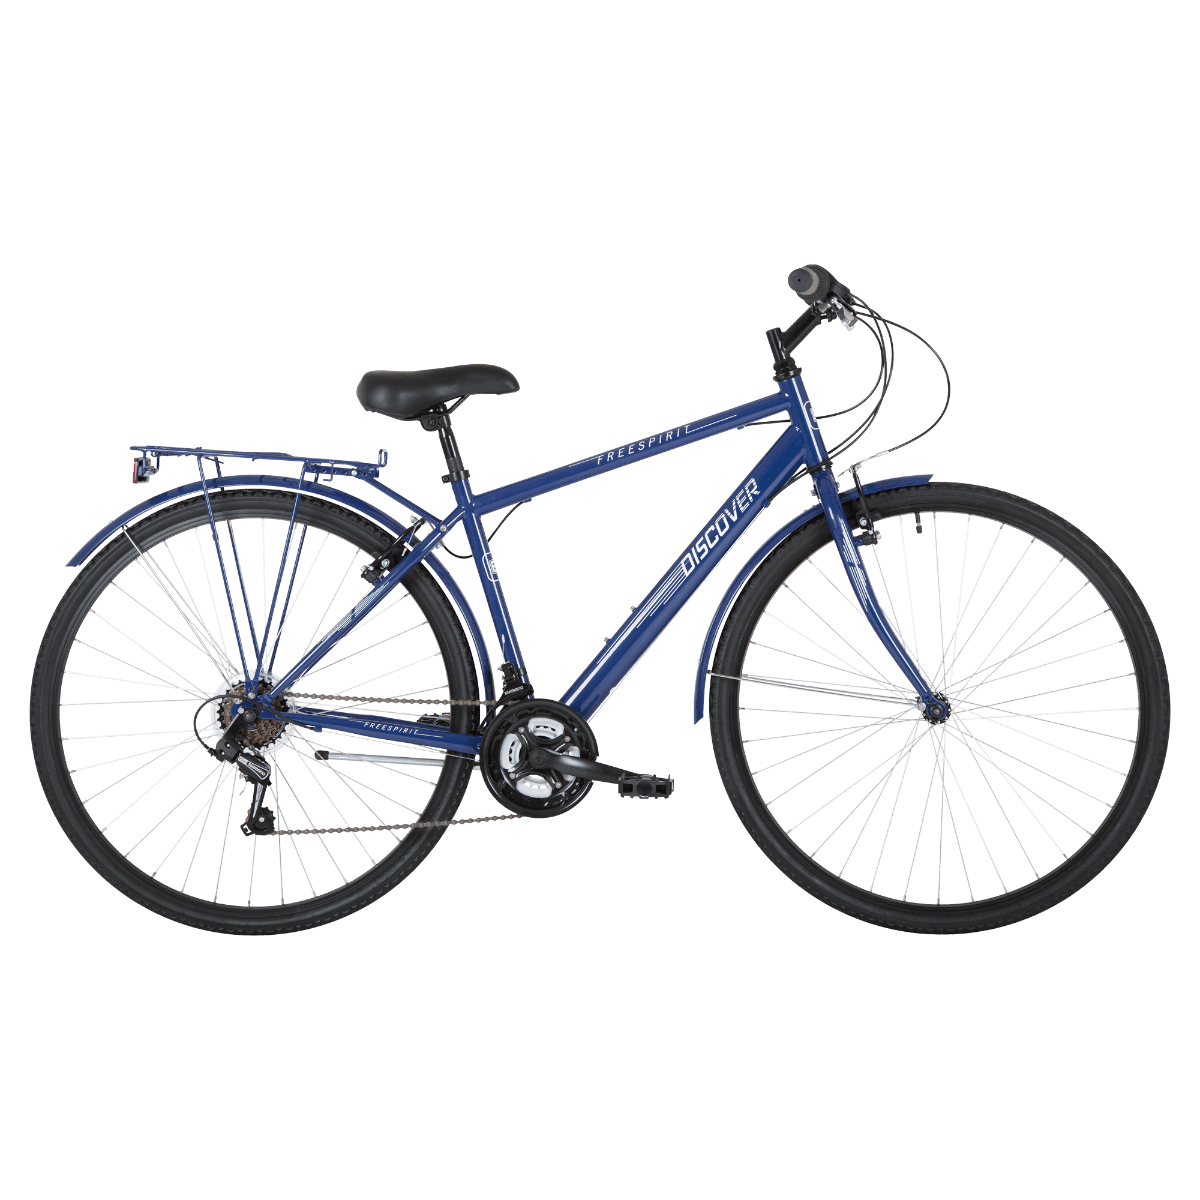 Freespirit Discover Gents Hybrid Bike From C Amp D Cycles